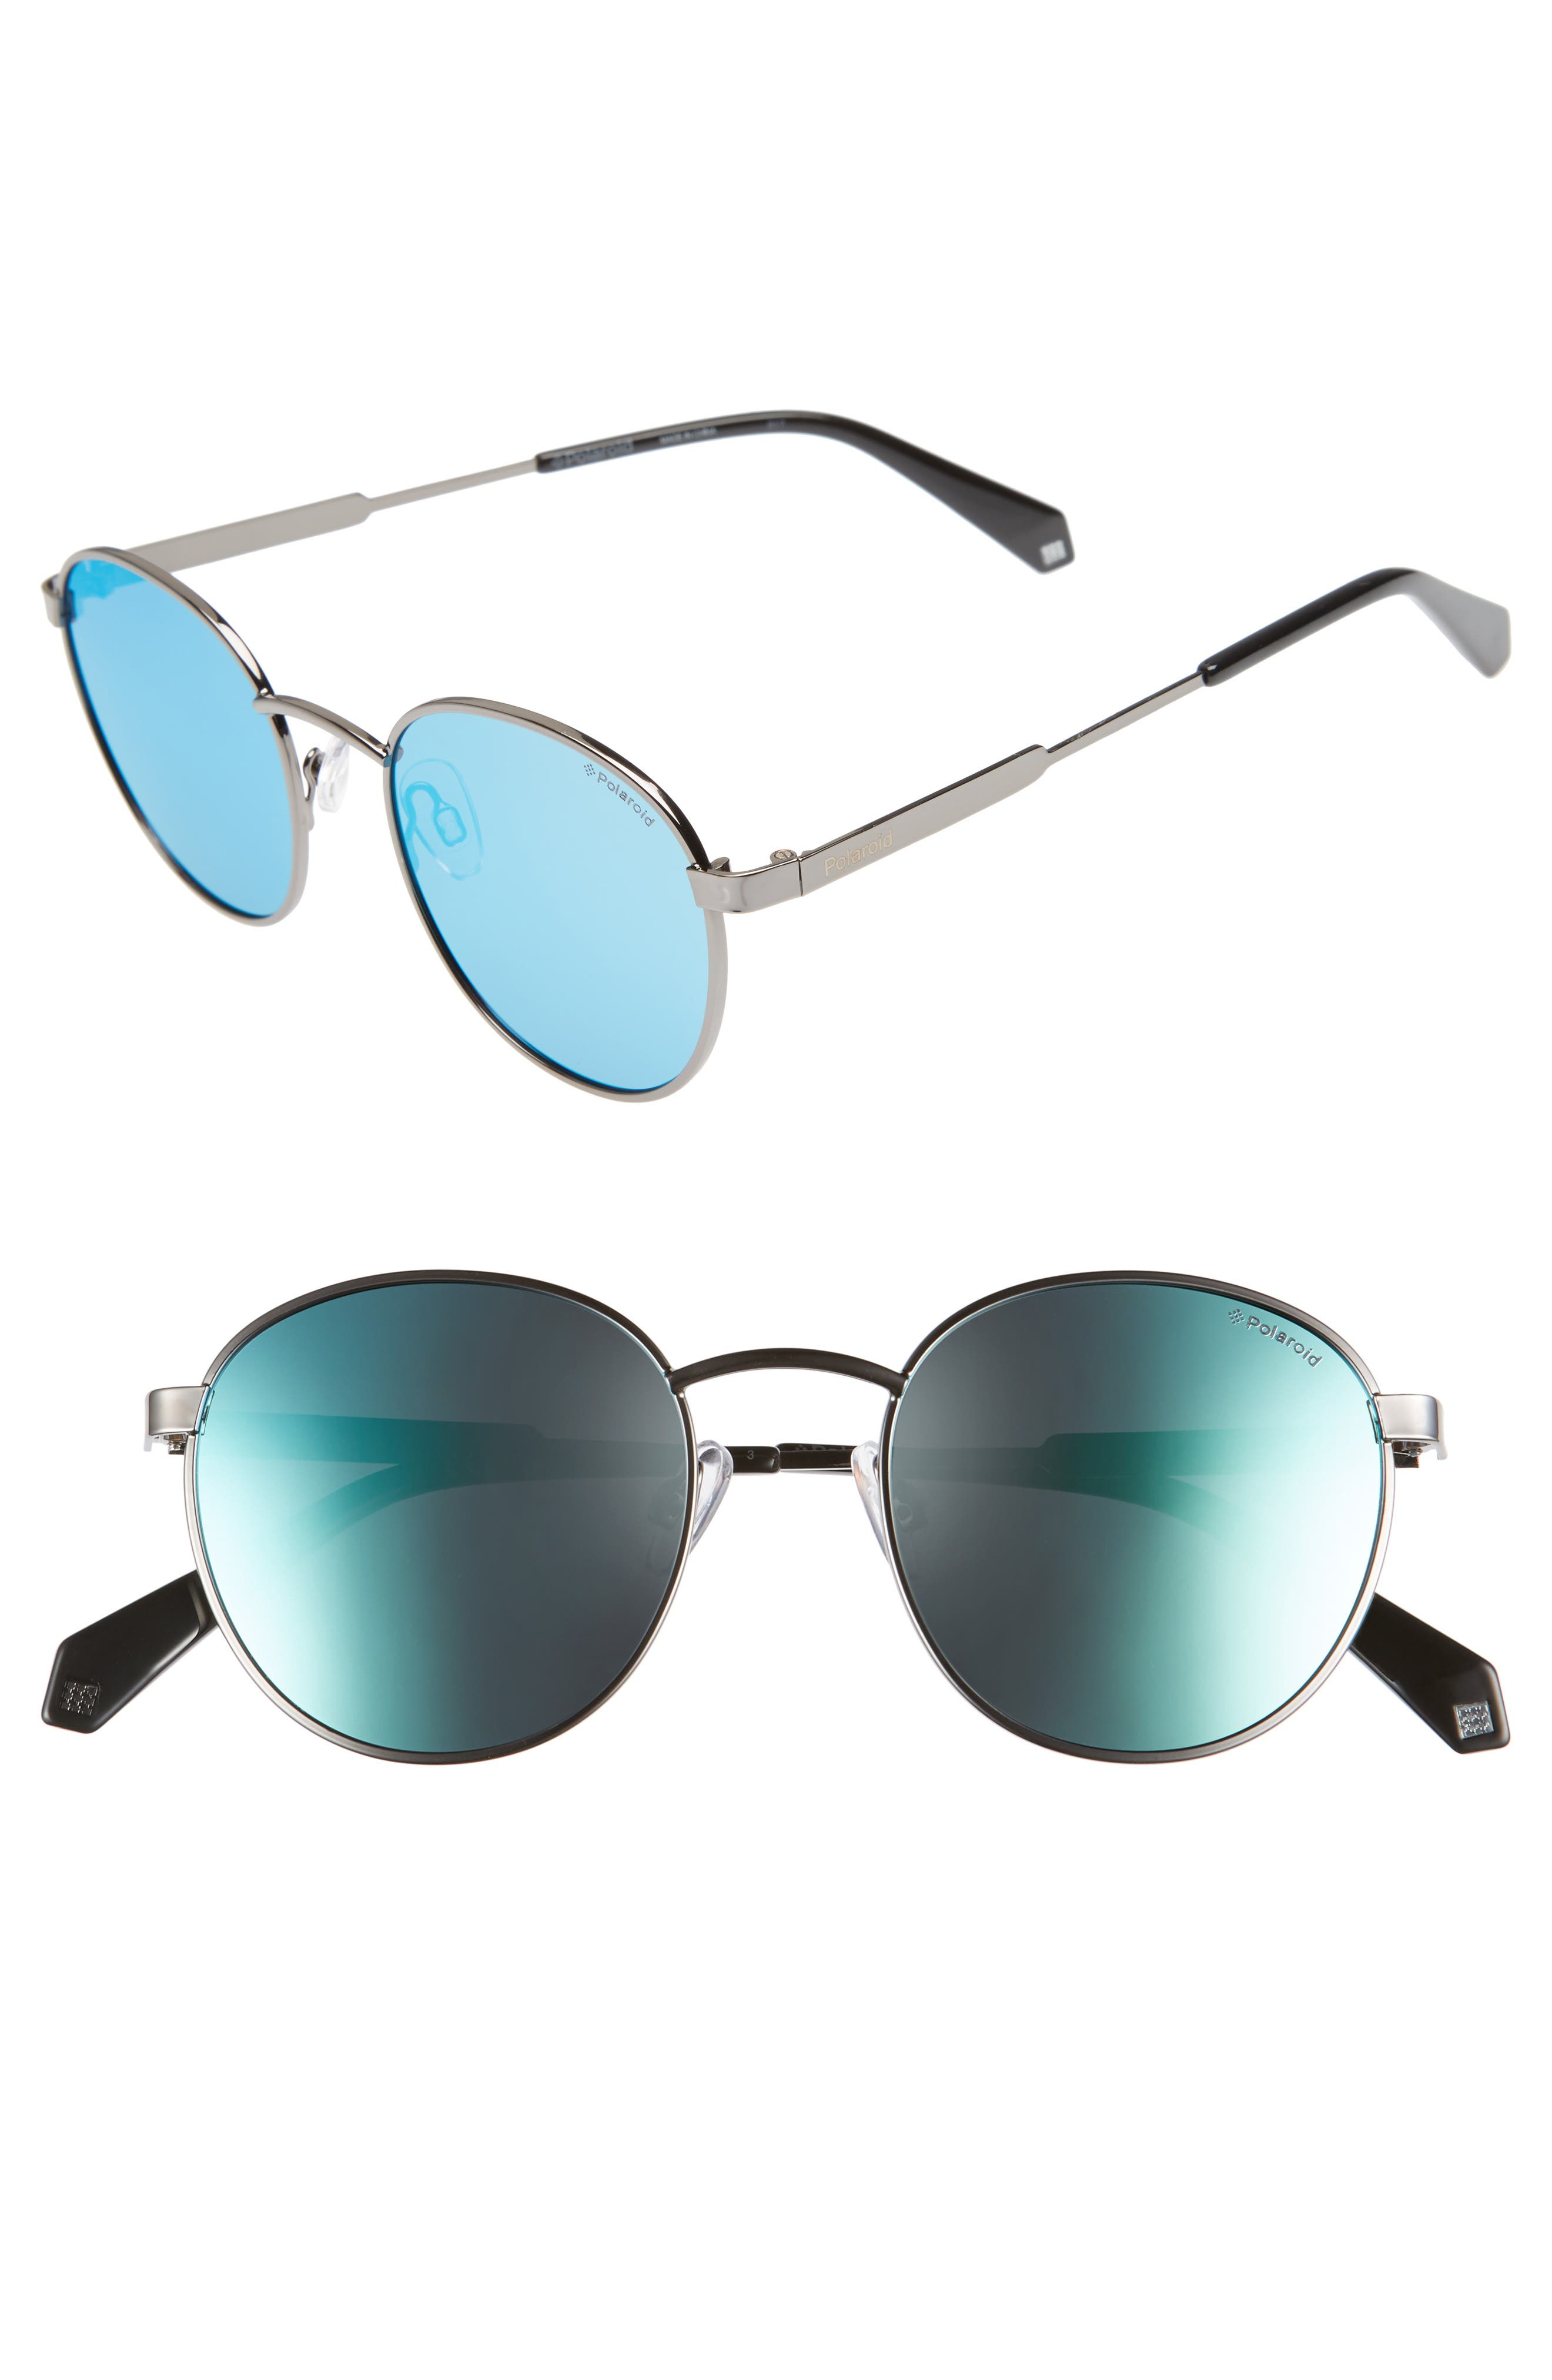 51mm Polarized Round Sunglasses,                             Main thumbnail 1, color,                             RUTHENIUM